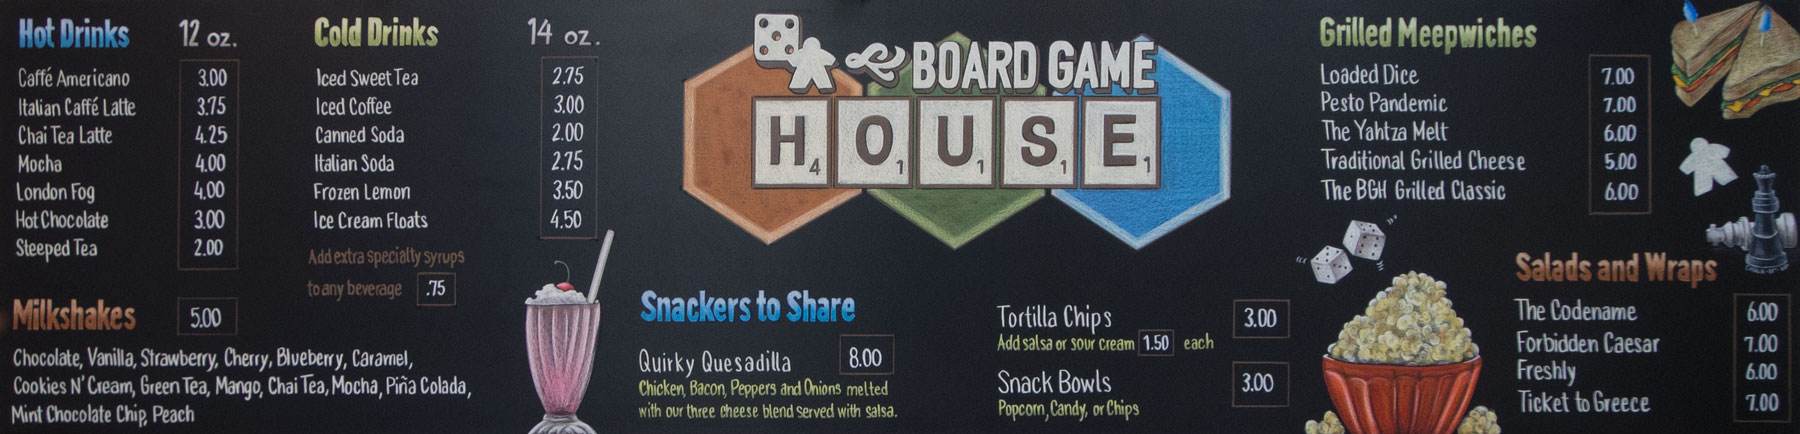 chalk menu sign, chalk menu, chalk sign, Toronto, Ontario, Chalk It Up Signs, hand drawn text and illustrations, Board Game House, Nanaimo, British Columbia, Canada, cafe, milkshakes, board games, local, games,